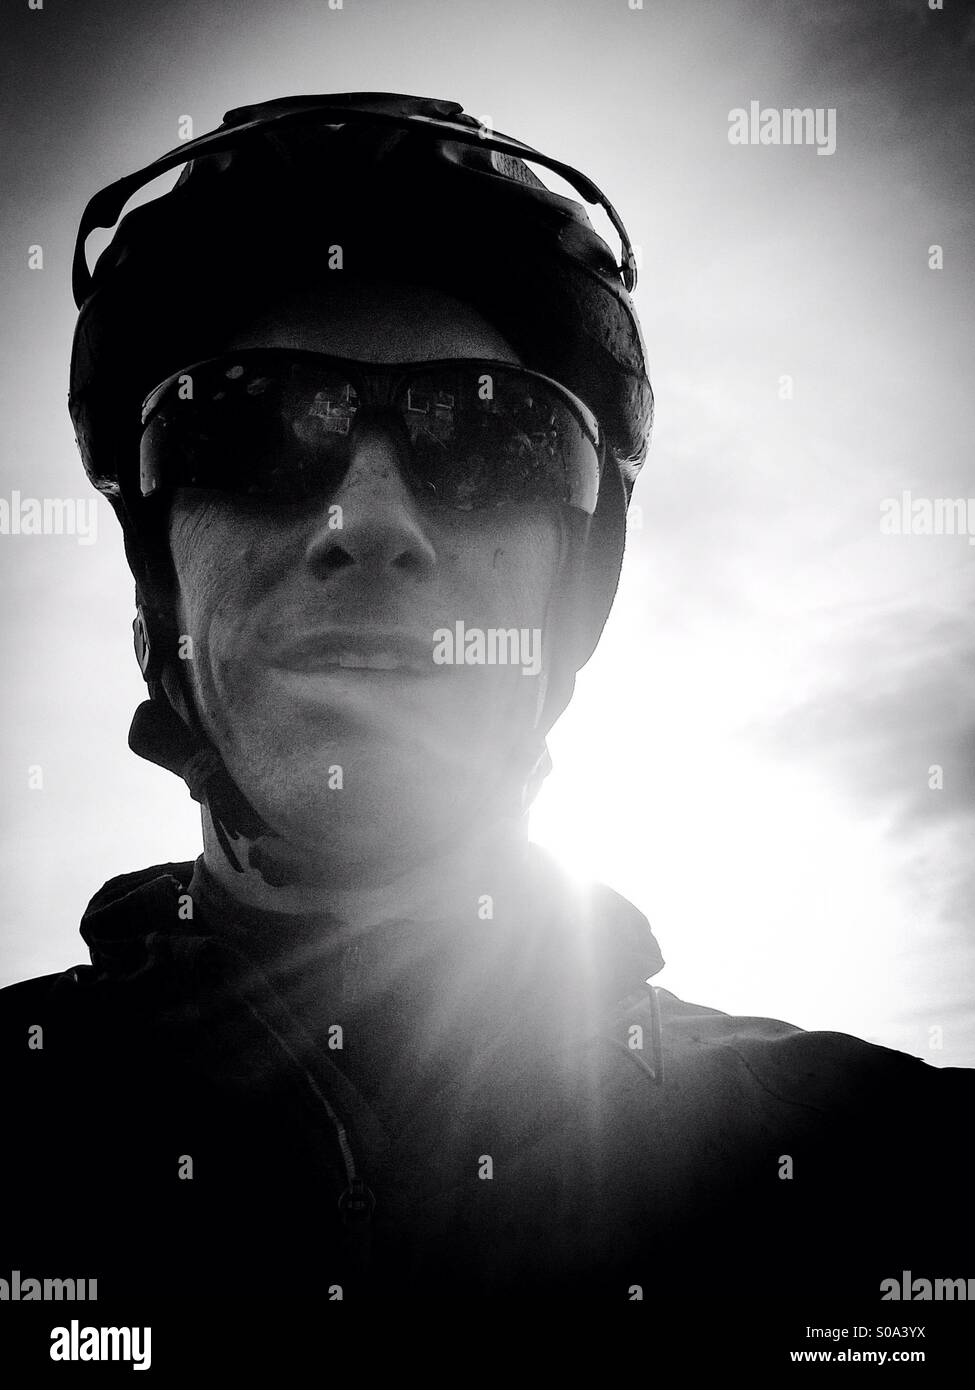 Mountain bike rider selfie portrait gritty black and white. - Stock Image